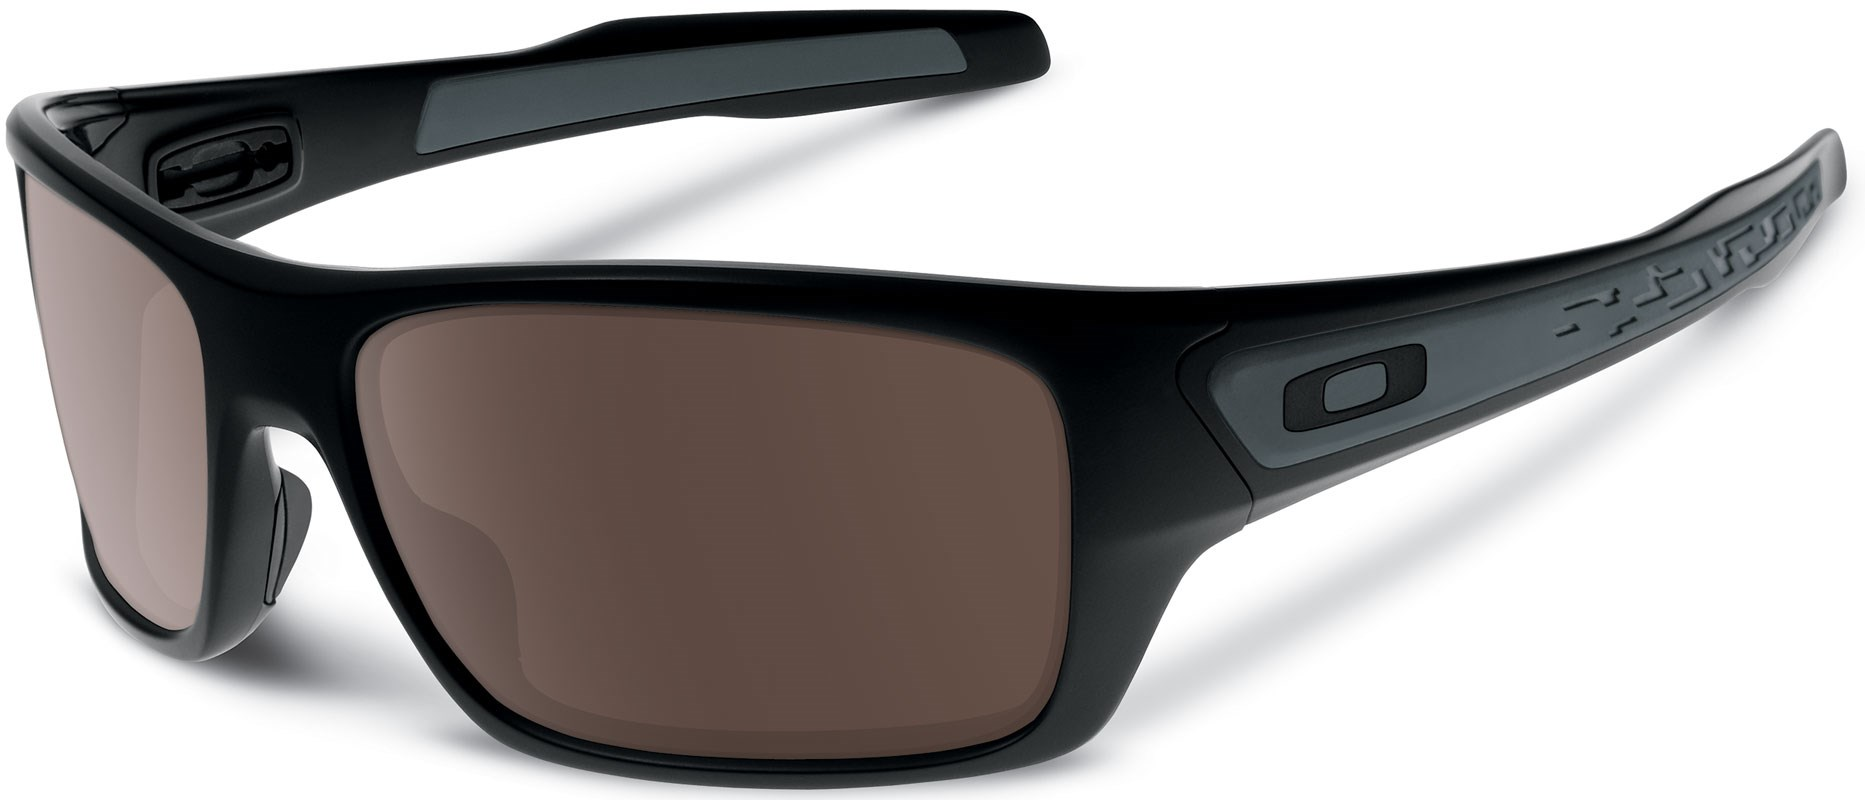 oakley online shop south africa